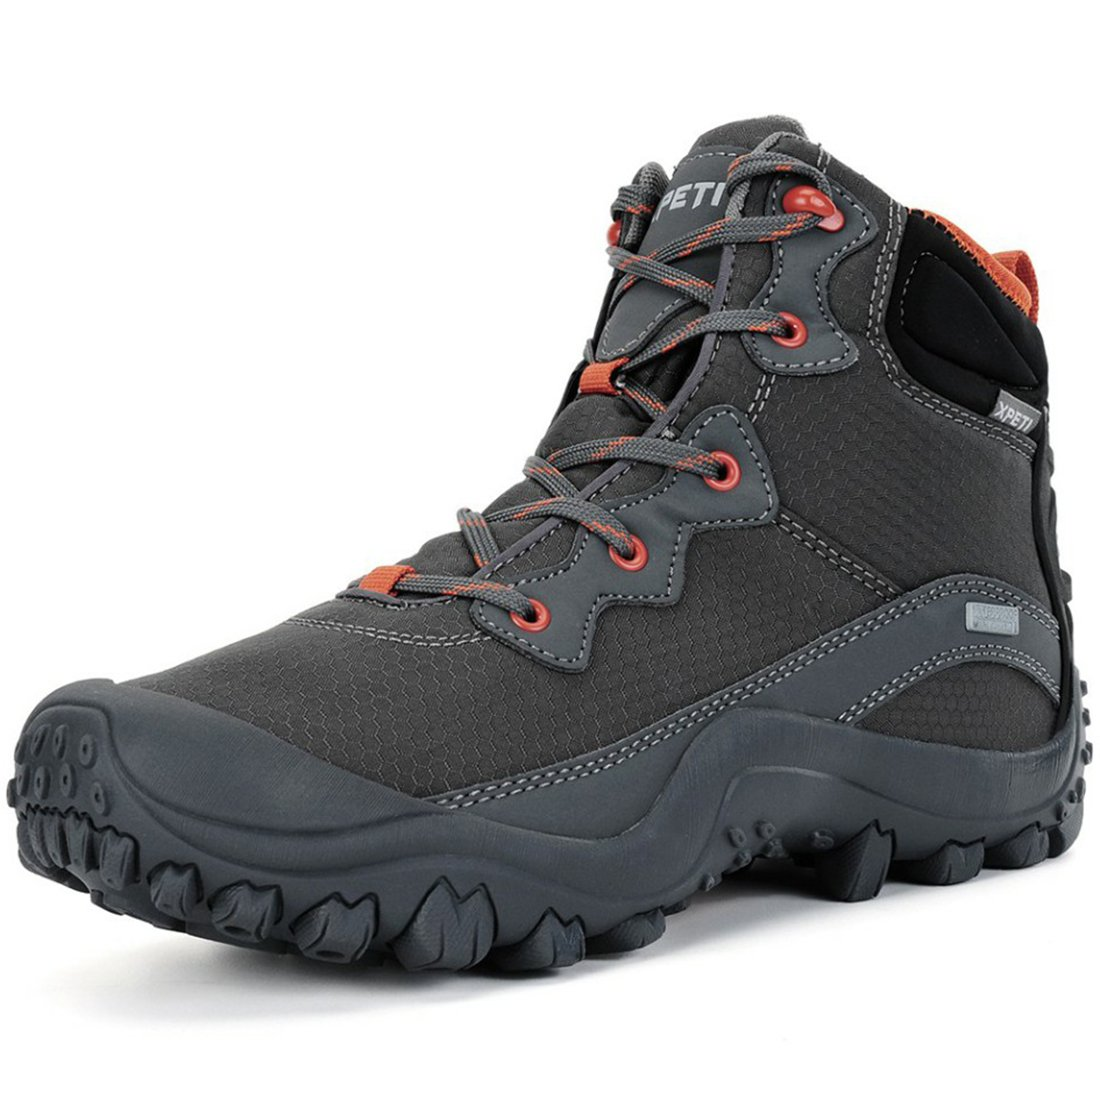 XPETI Men's Dimo Mid Waterproof Hiking Trekking Trail Boot Gray 8